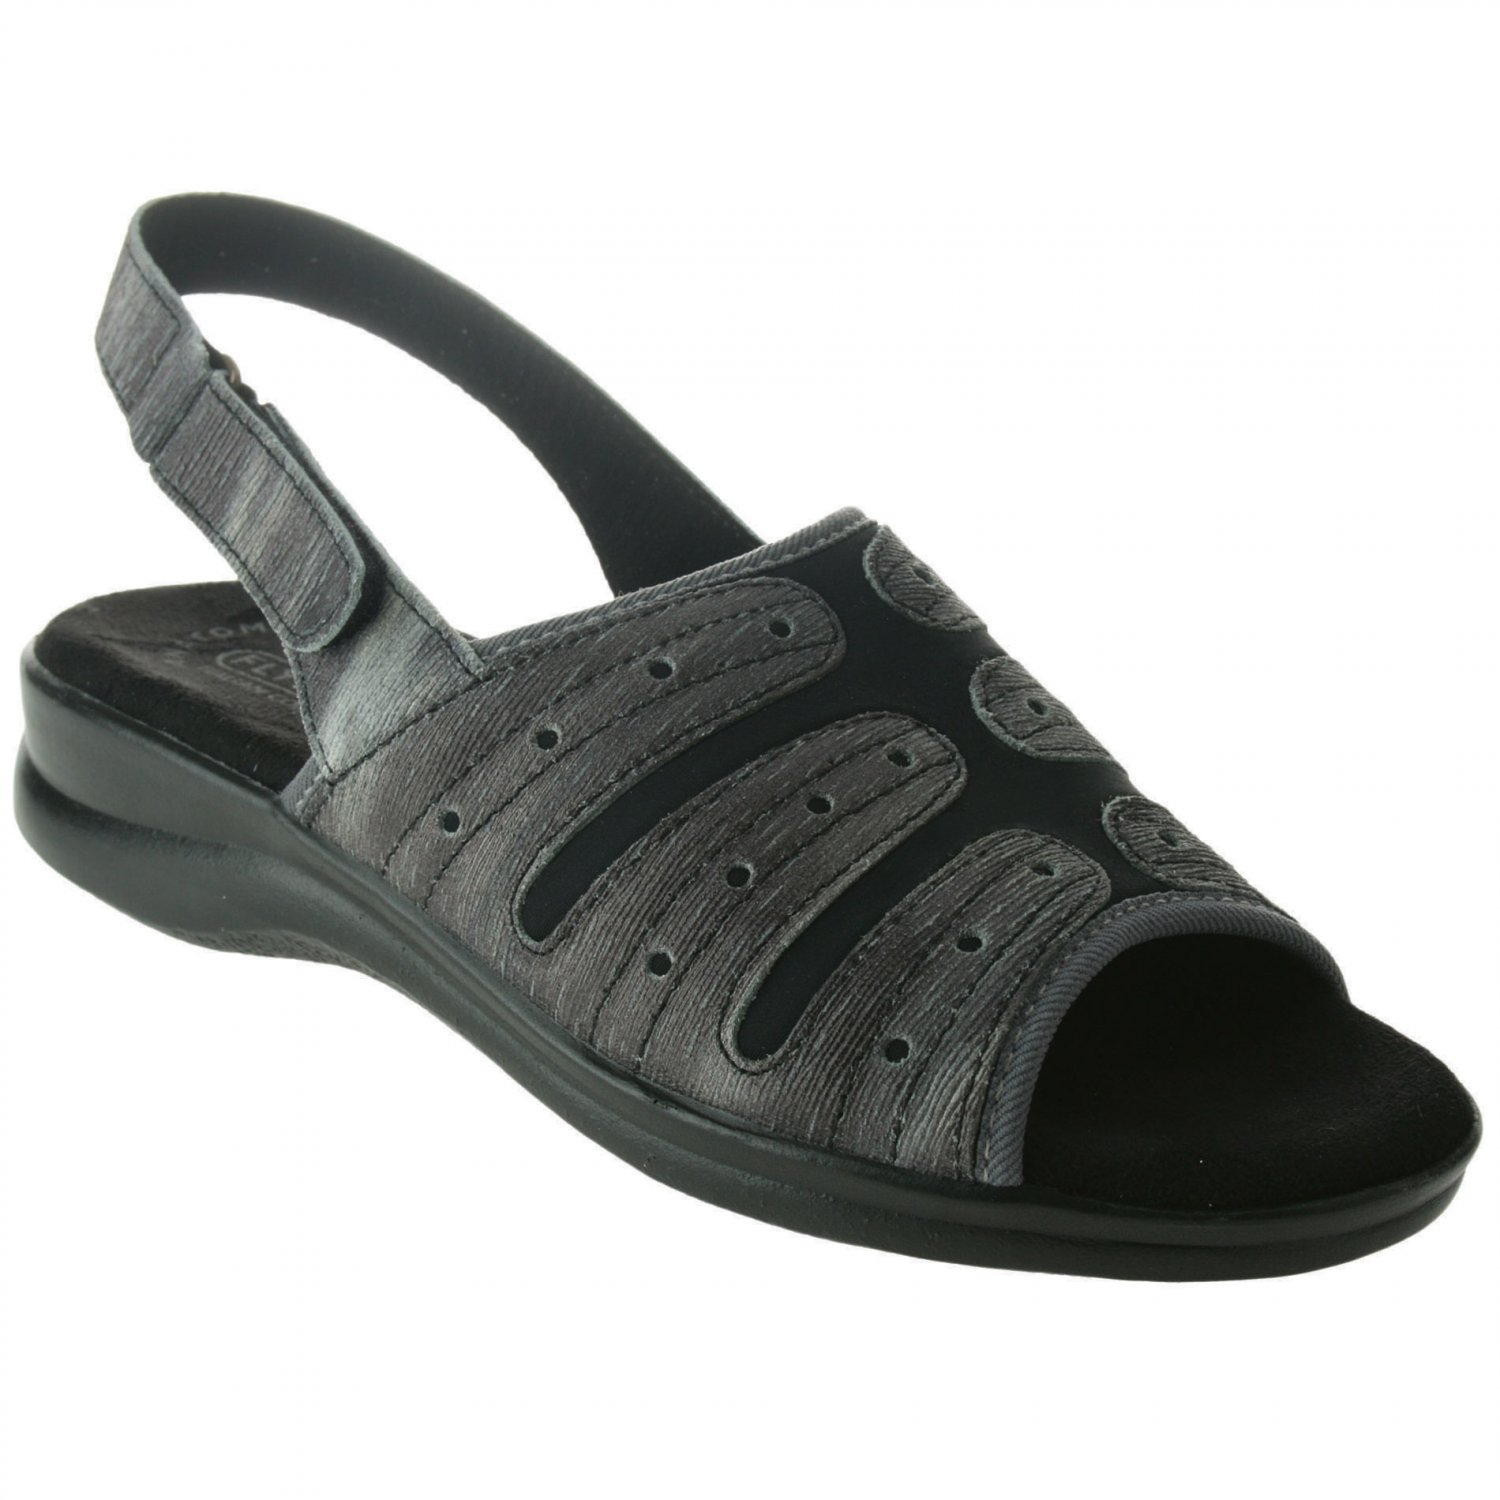 FLY FLOT NEWPORT Sandals Shoes All Sizes & Colors $79.